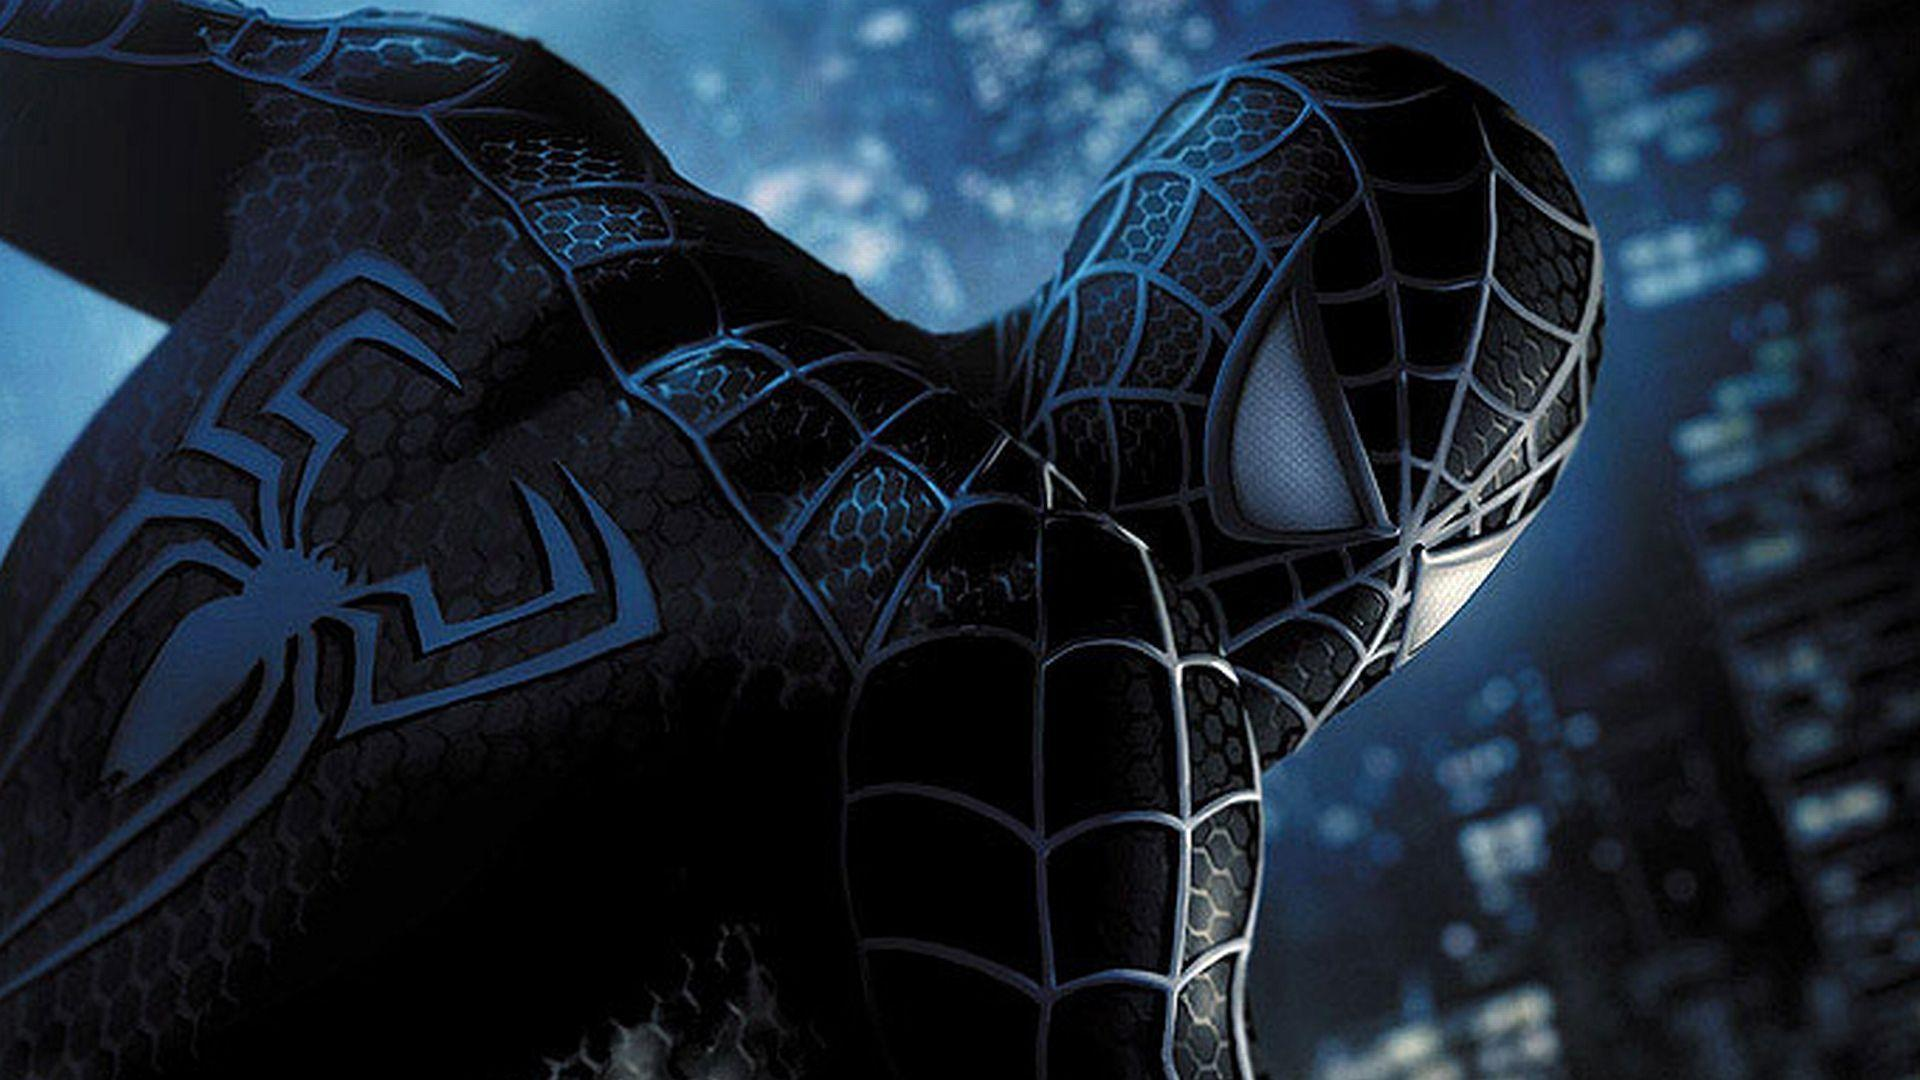 animals for black spiderman wallpaper widescreen hd